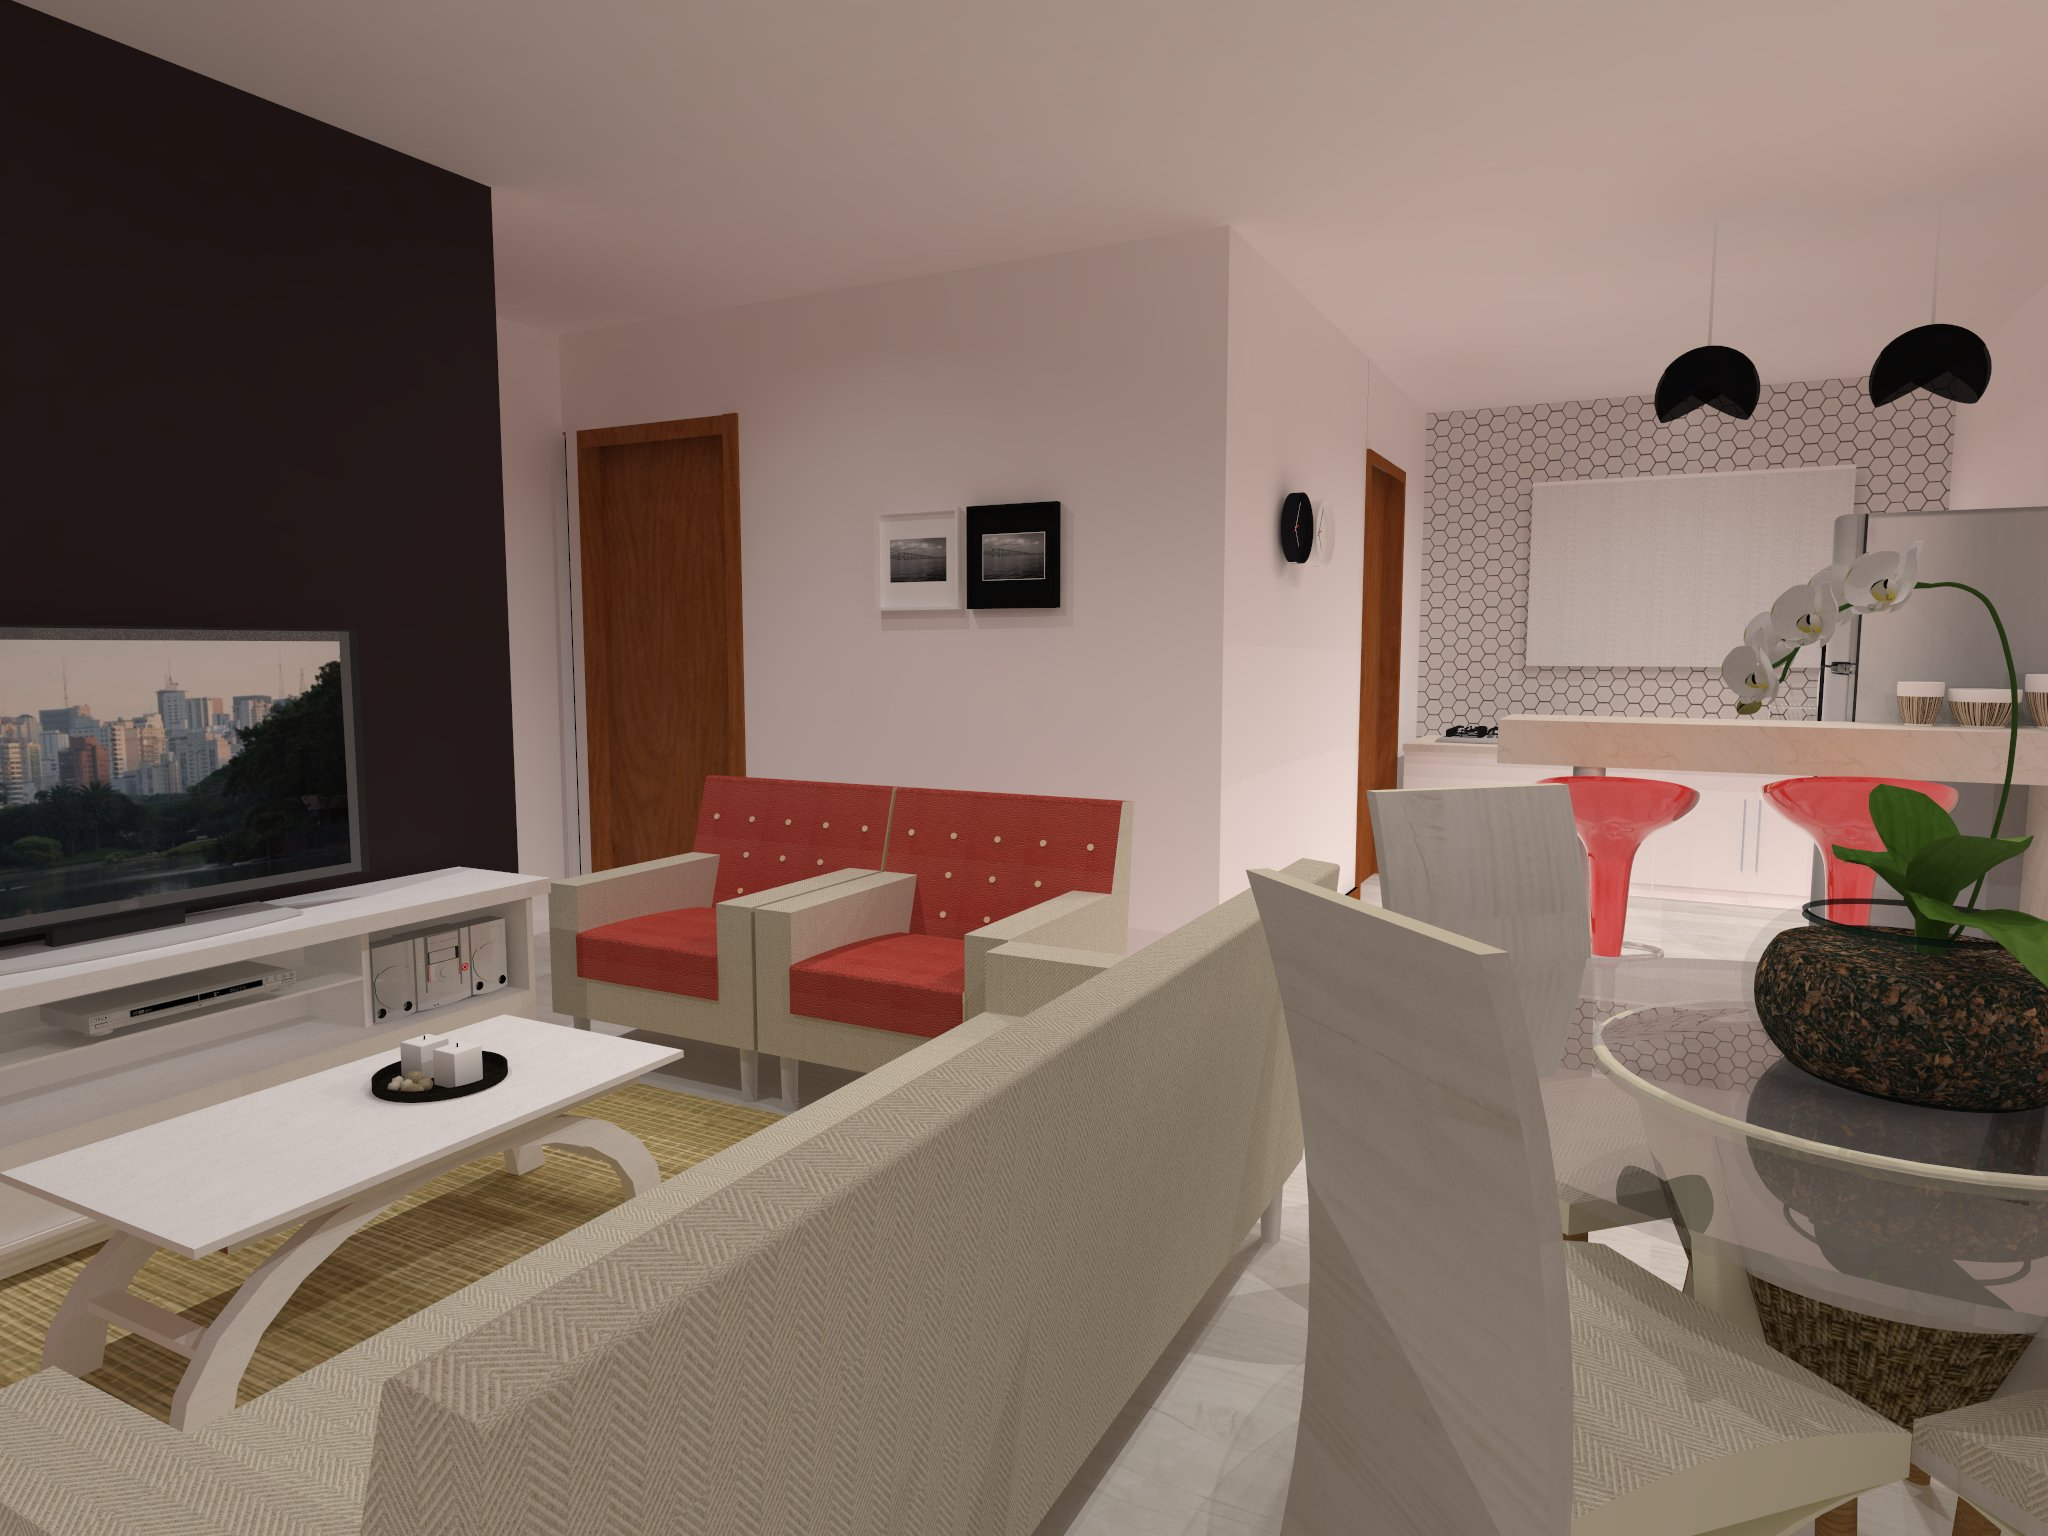 Residencial Vale do Sol - Interior 2